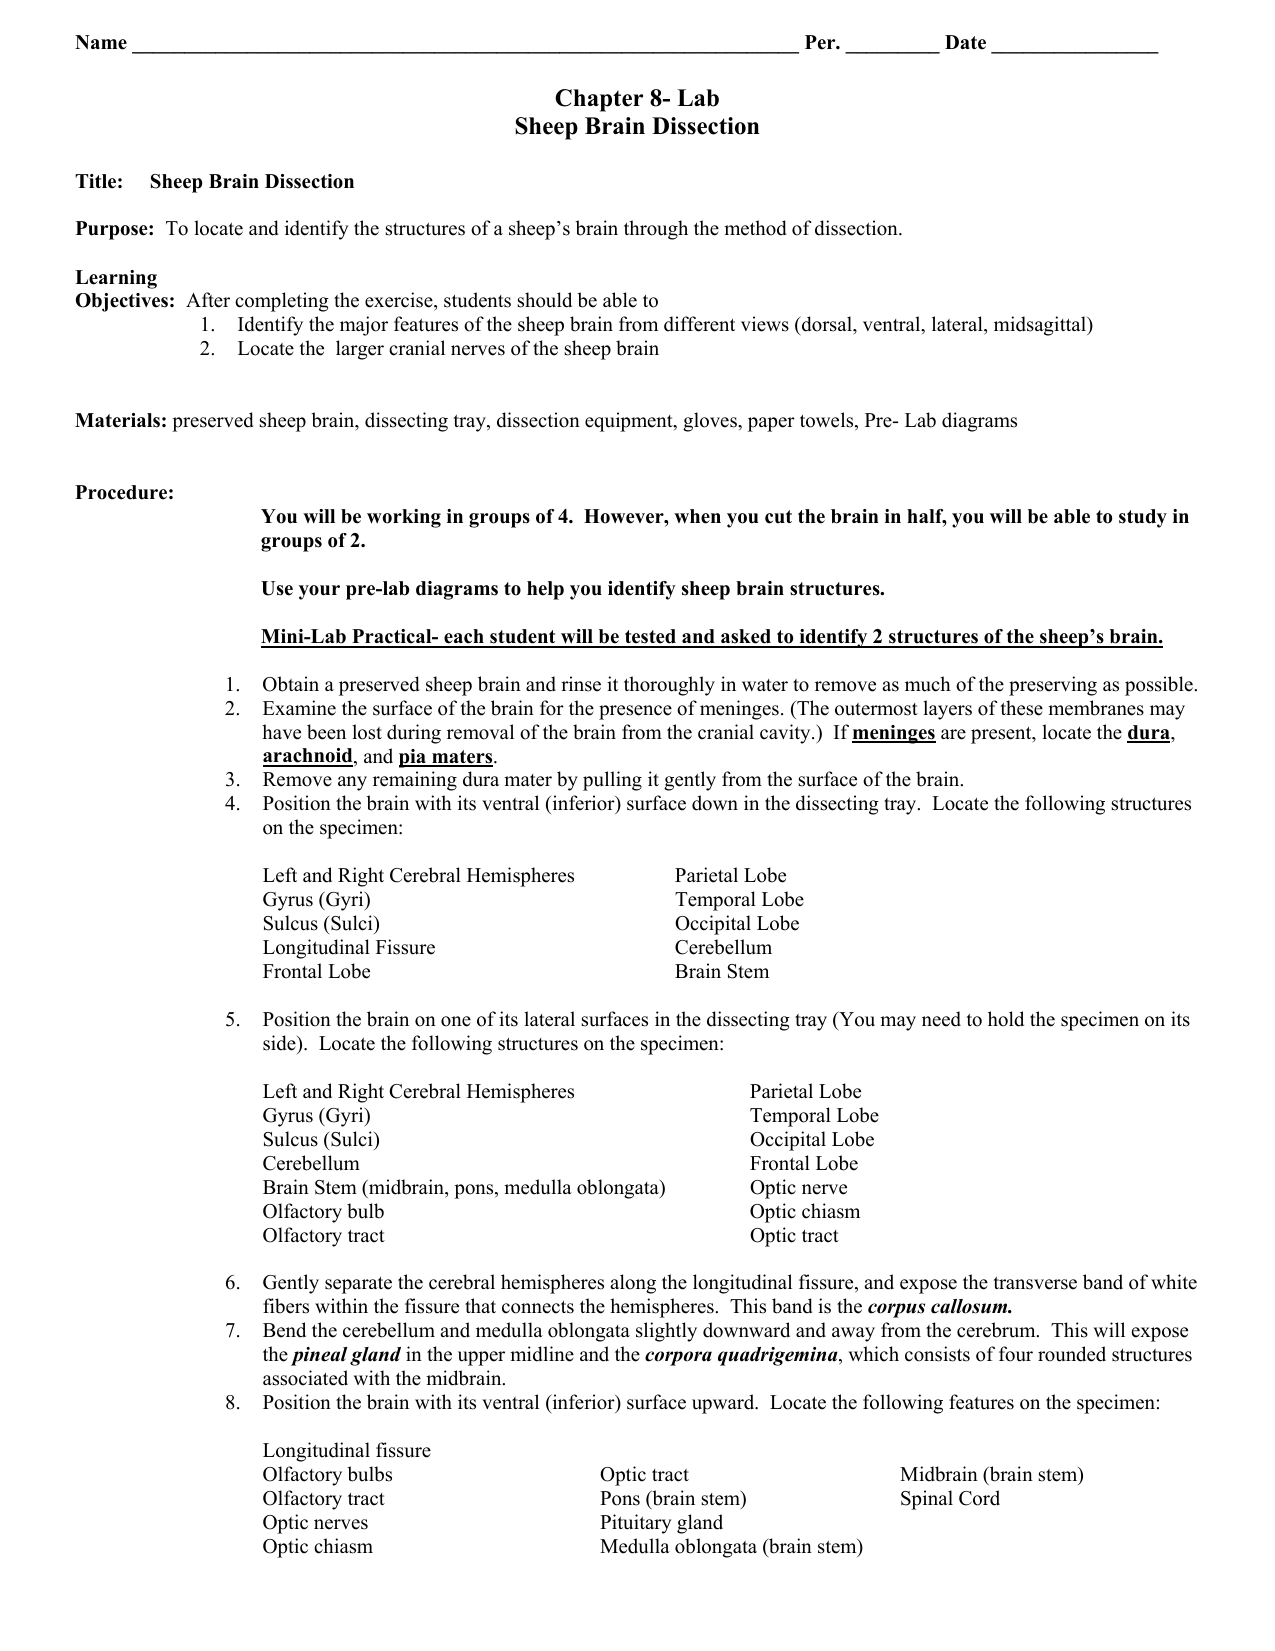 Chapter 8 Lab Sheep Brain Dissection – Sheep Brain Dissection Worksheet